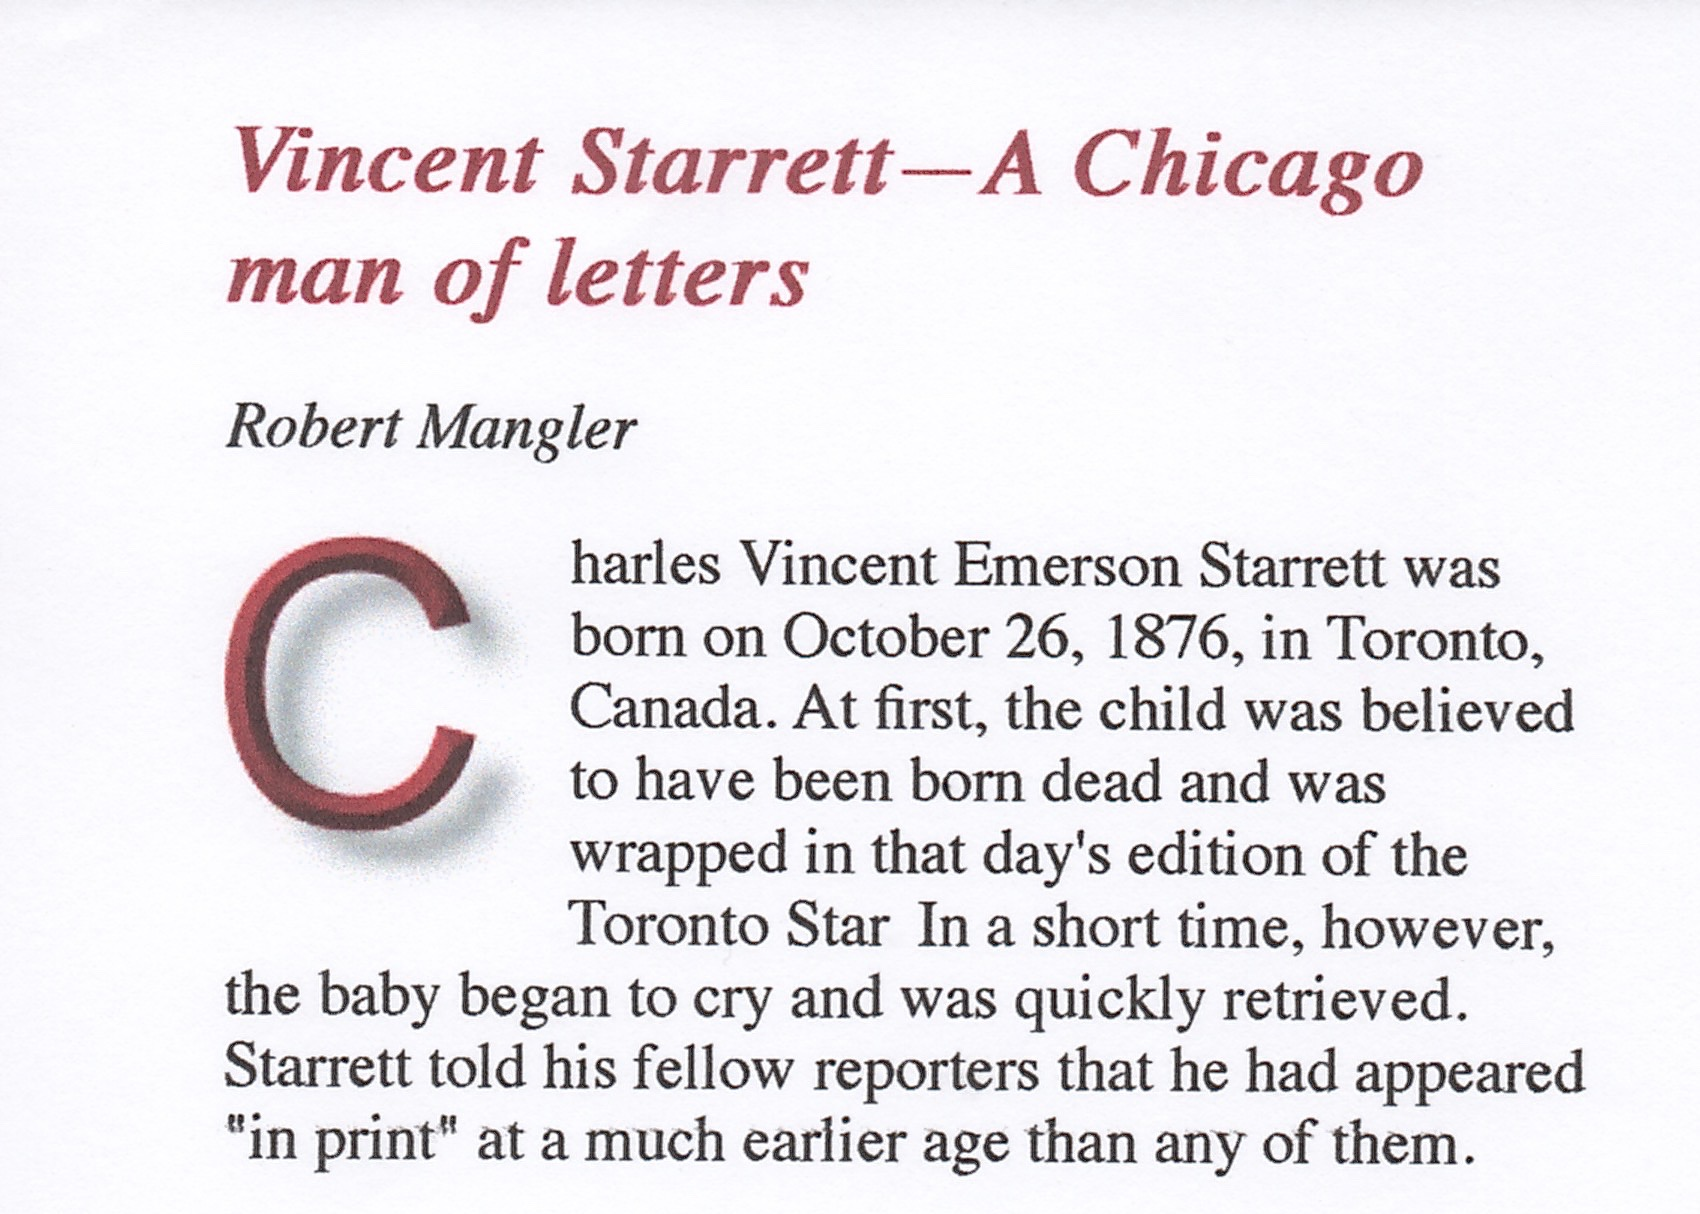 The beginning of Bob Mangler's tribute to Vincent Starrett.